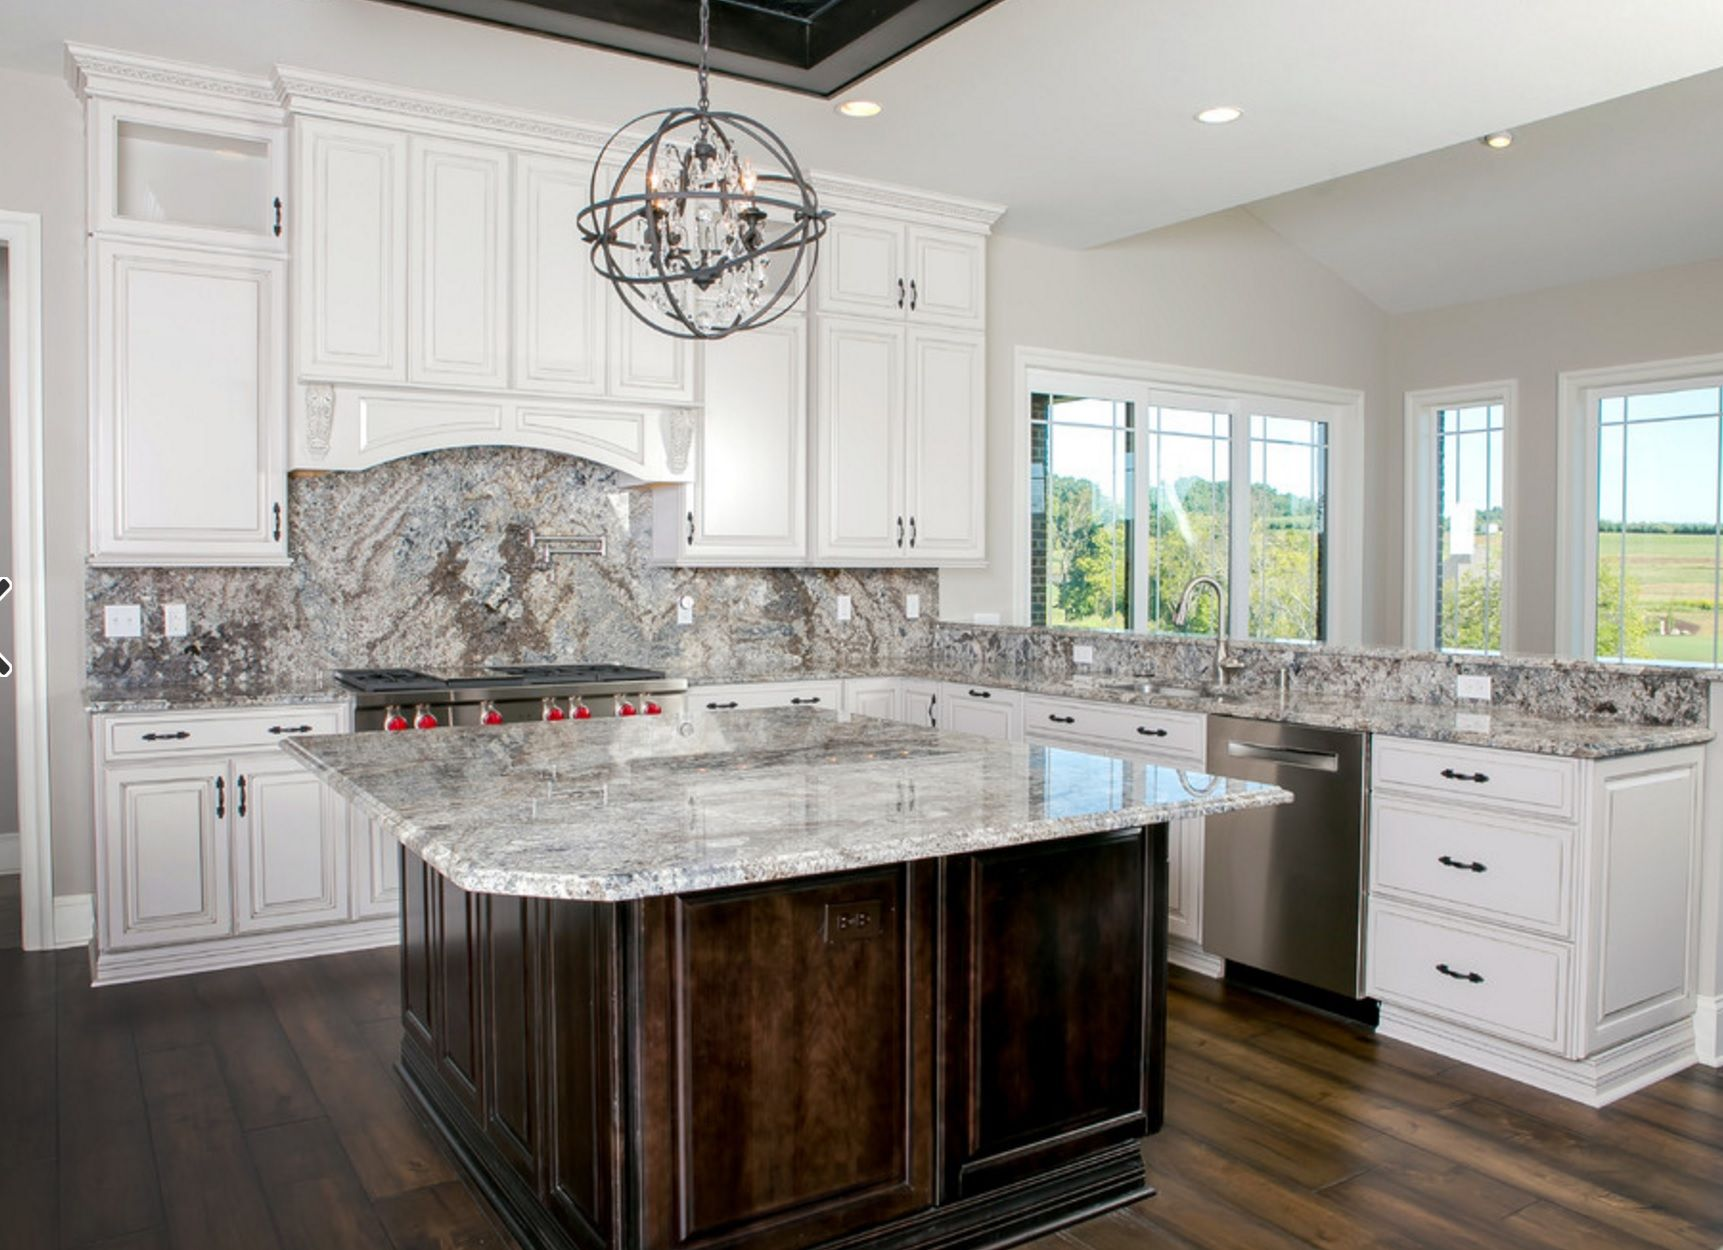 Trendy Meets Traditional In This 84 Lumber Kitchen Design Kitchen Trends Kitchen Design Free Kitchen Design